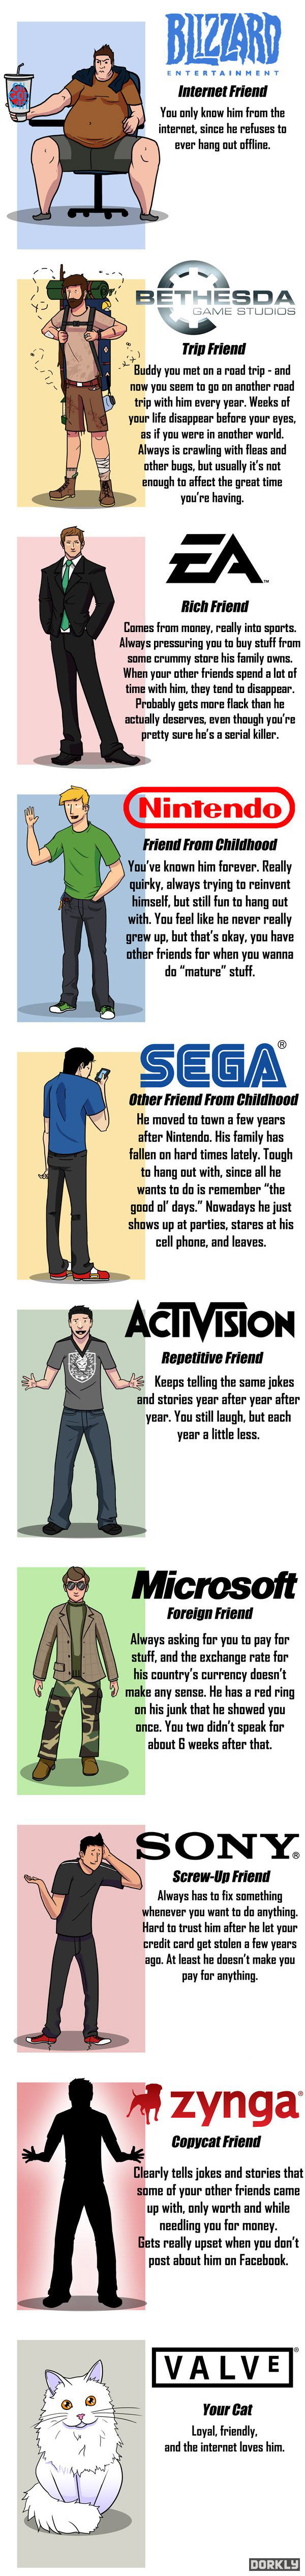 Video game companies as friends